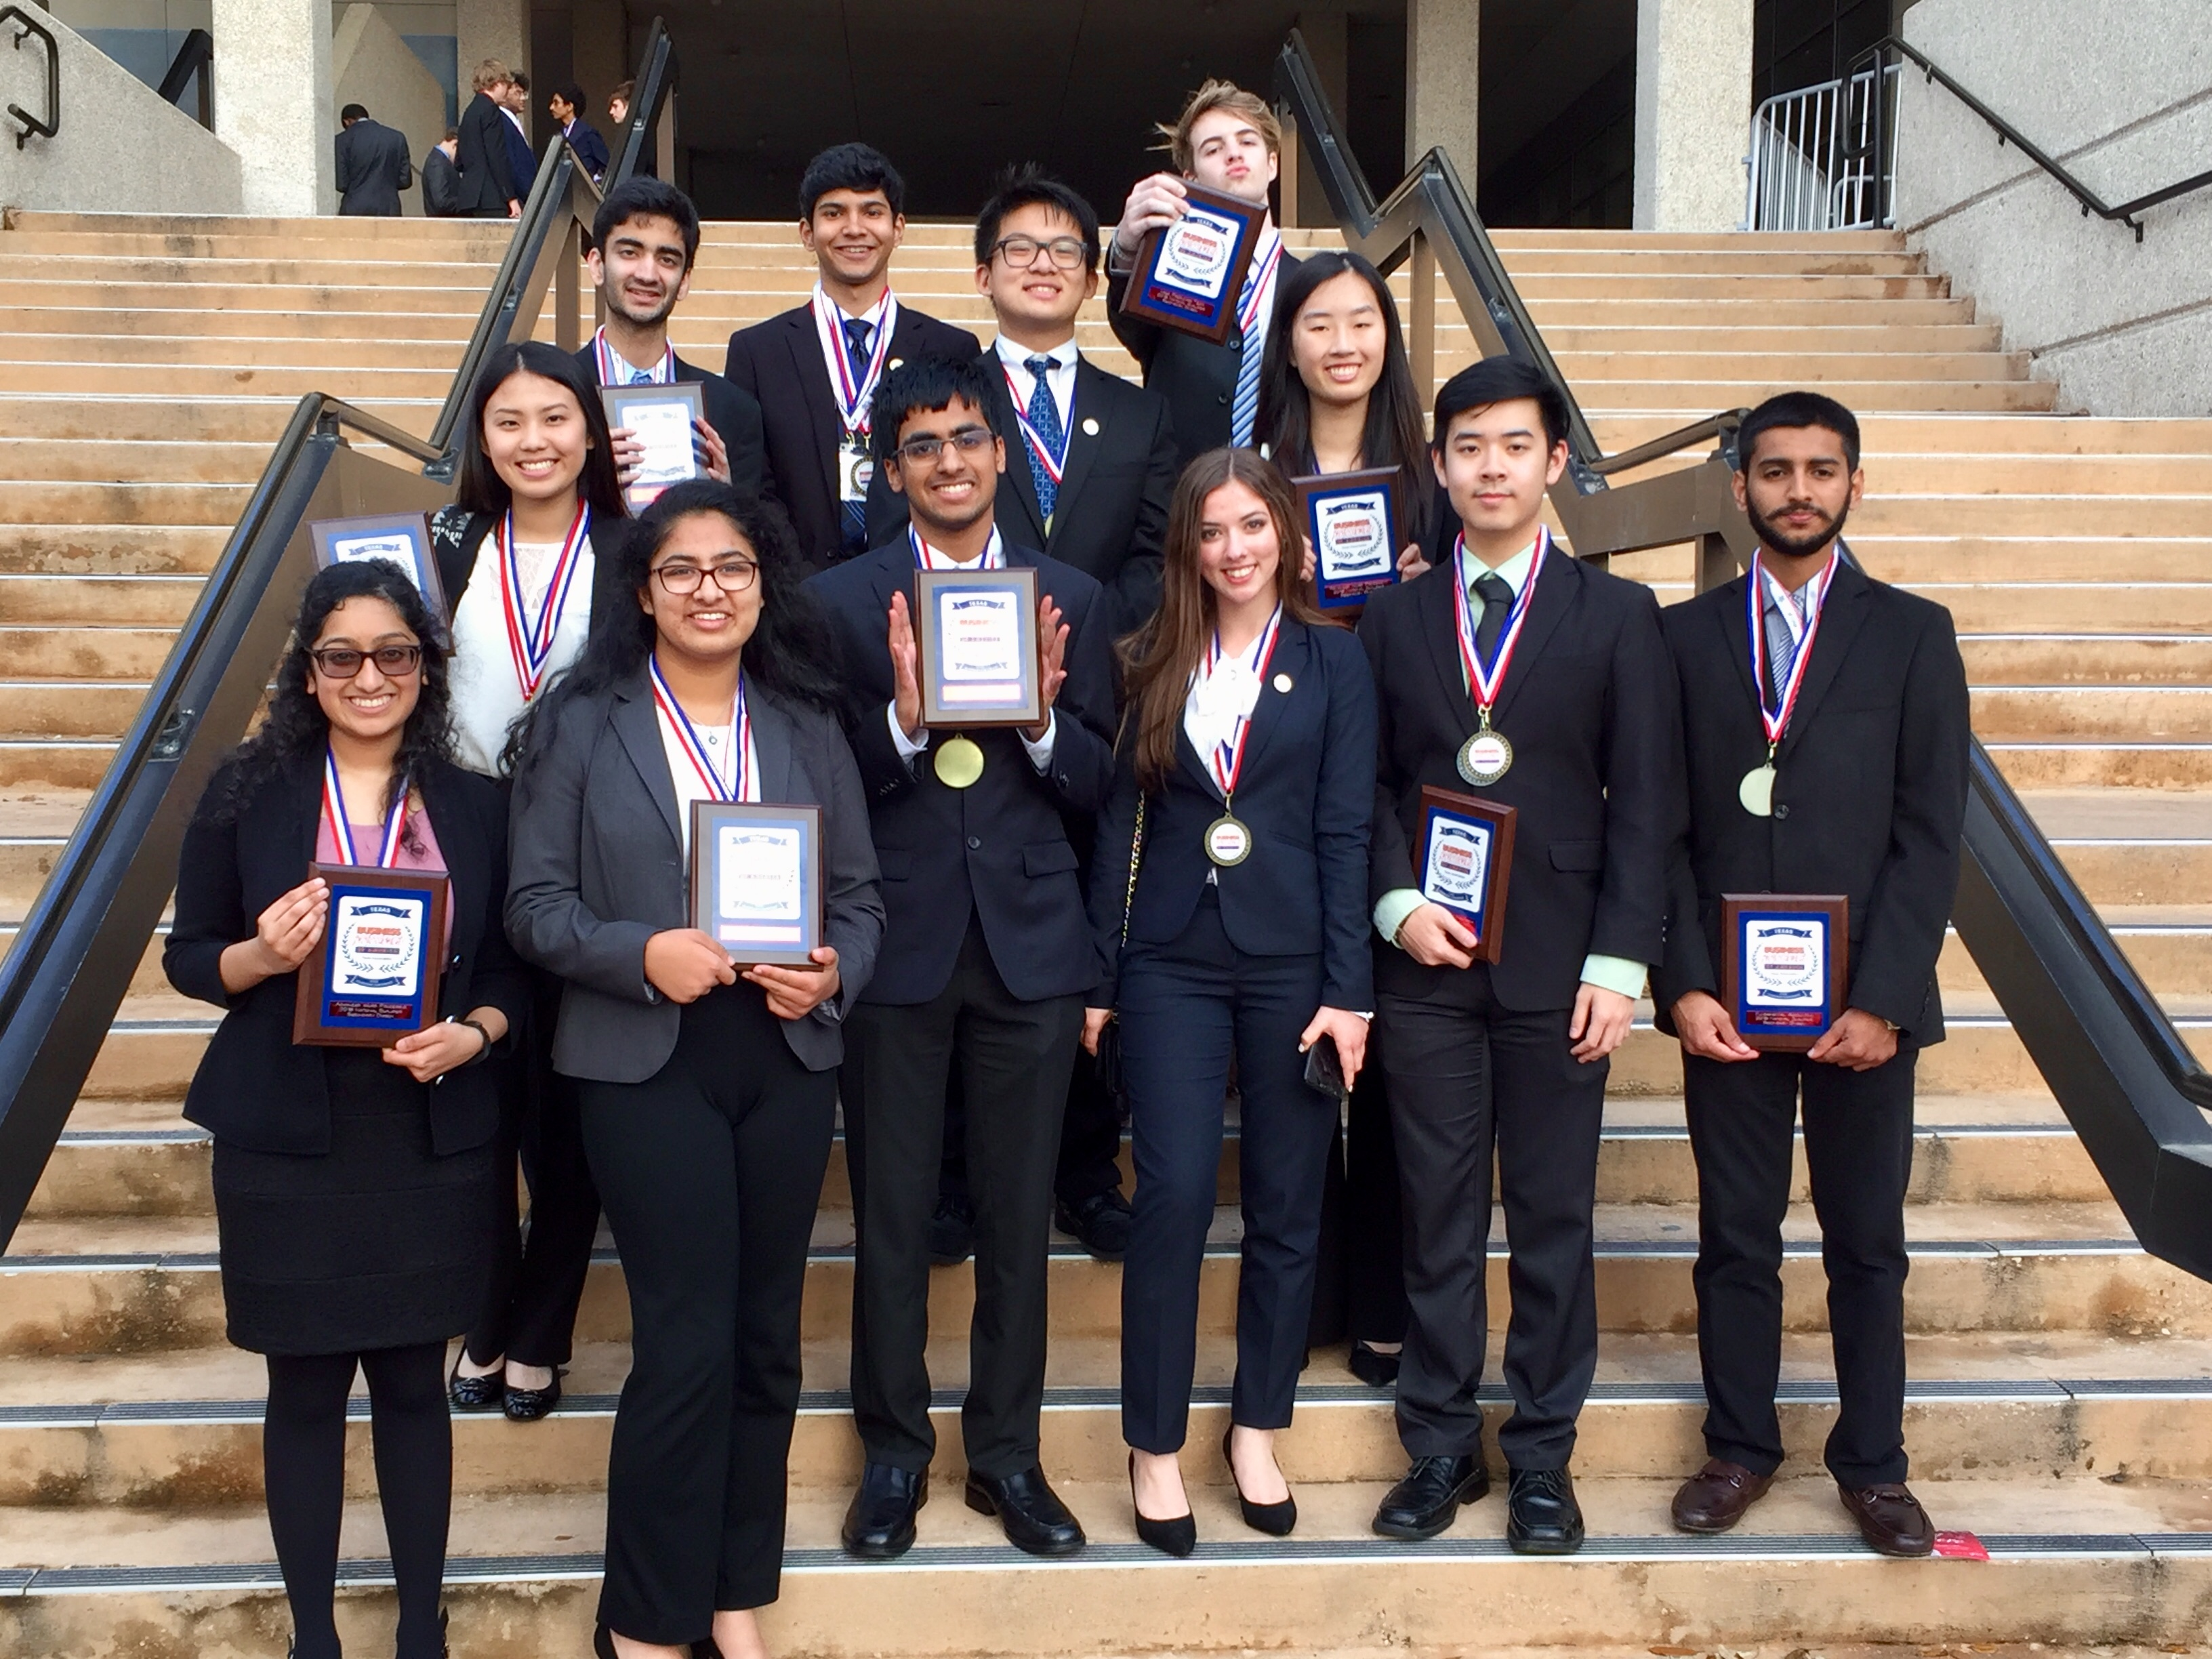 BPA Plano and Plano West students going to National competition